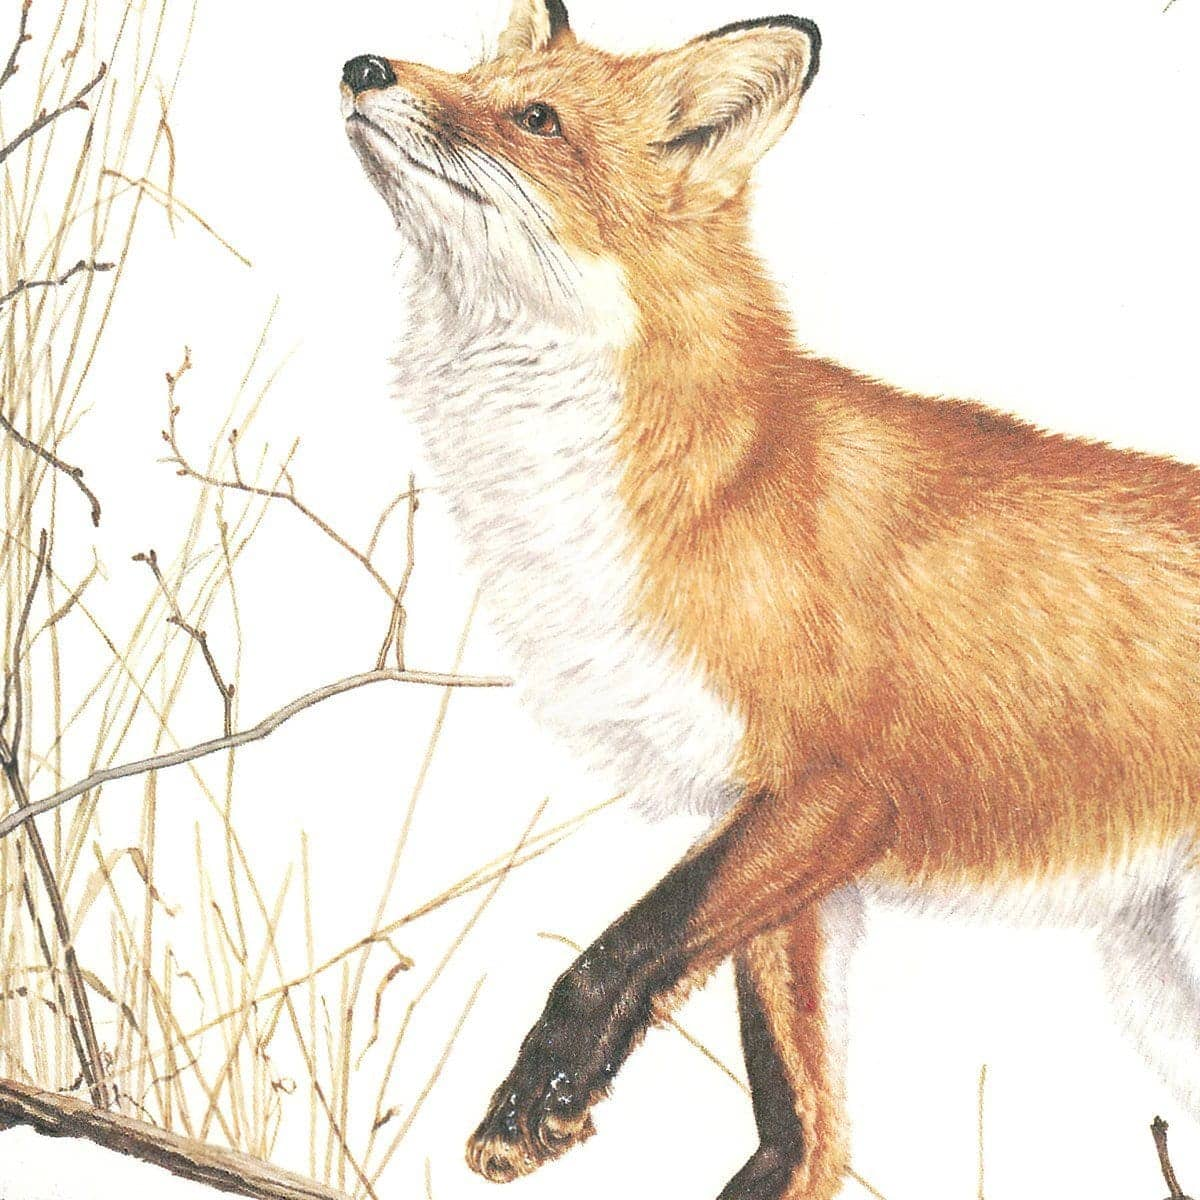 Red Fox And Ring-necked Pheasant - Art Print by Glen Loates from the Glen Loates Store